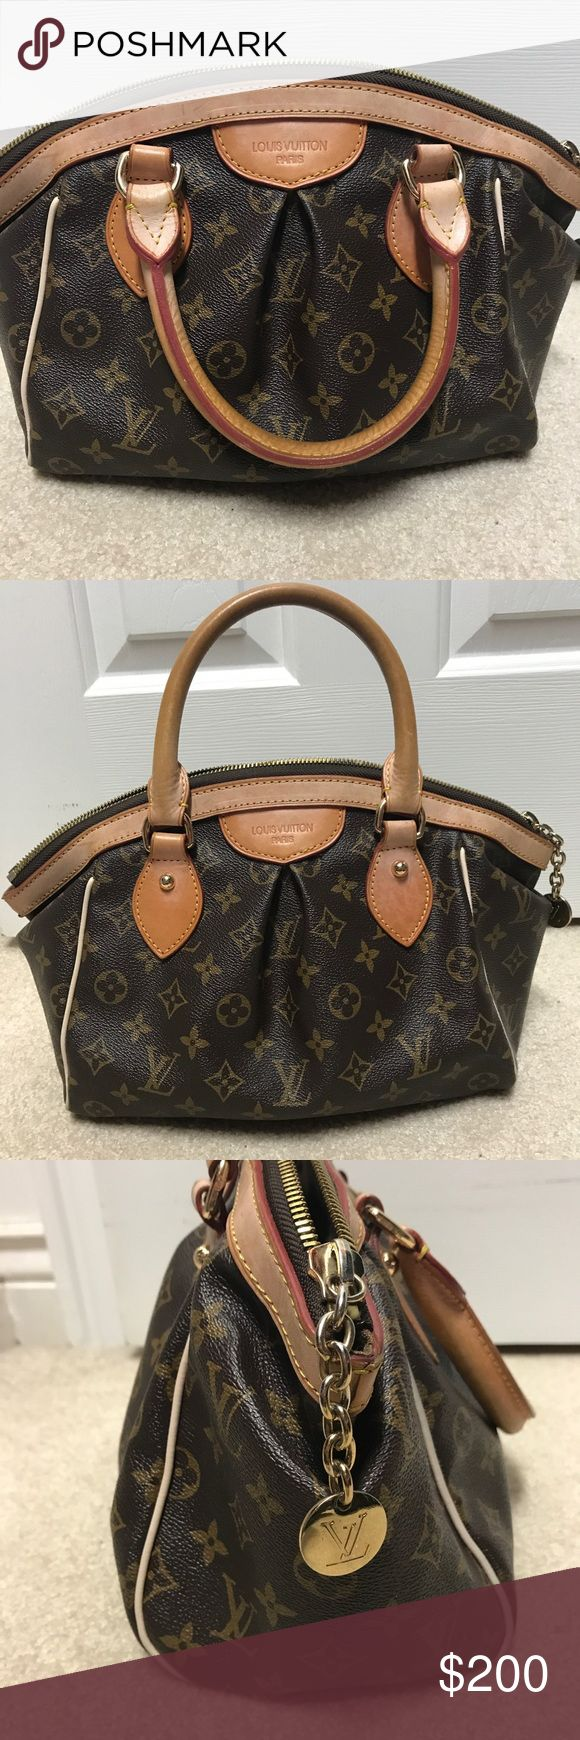 Louis Vuitton Tivoli PM LV inspired. Carried lightly. Real leather beginning to oxidize. AAA quality. Bags Satchels